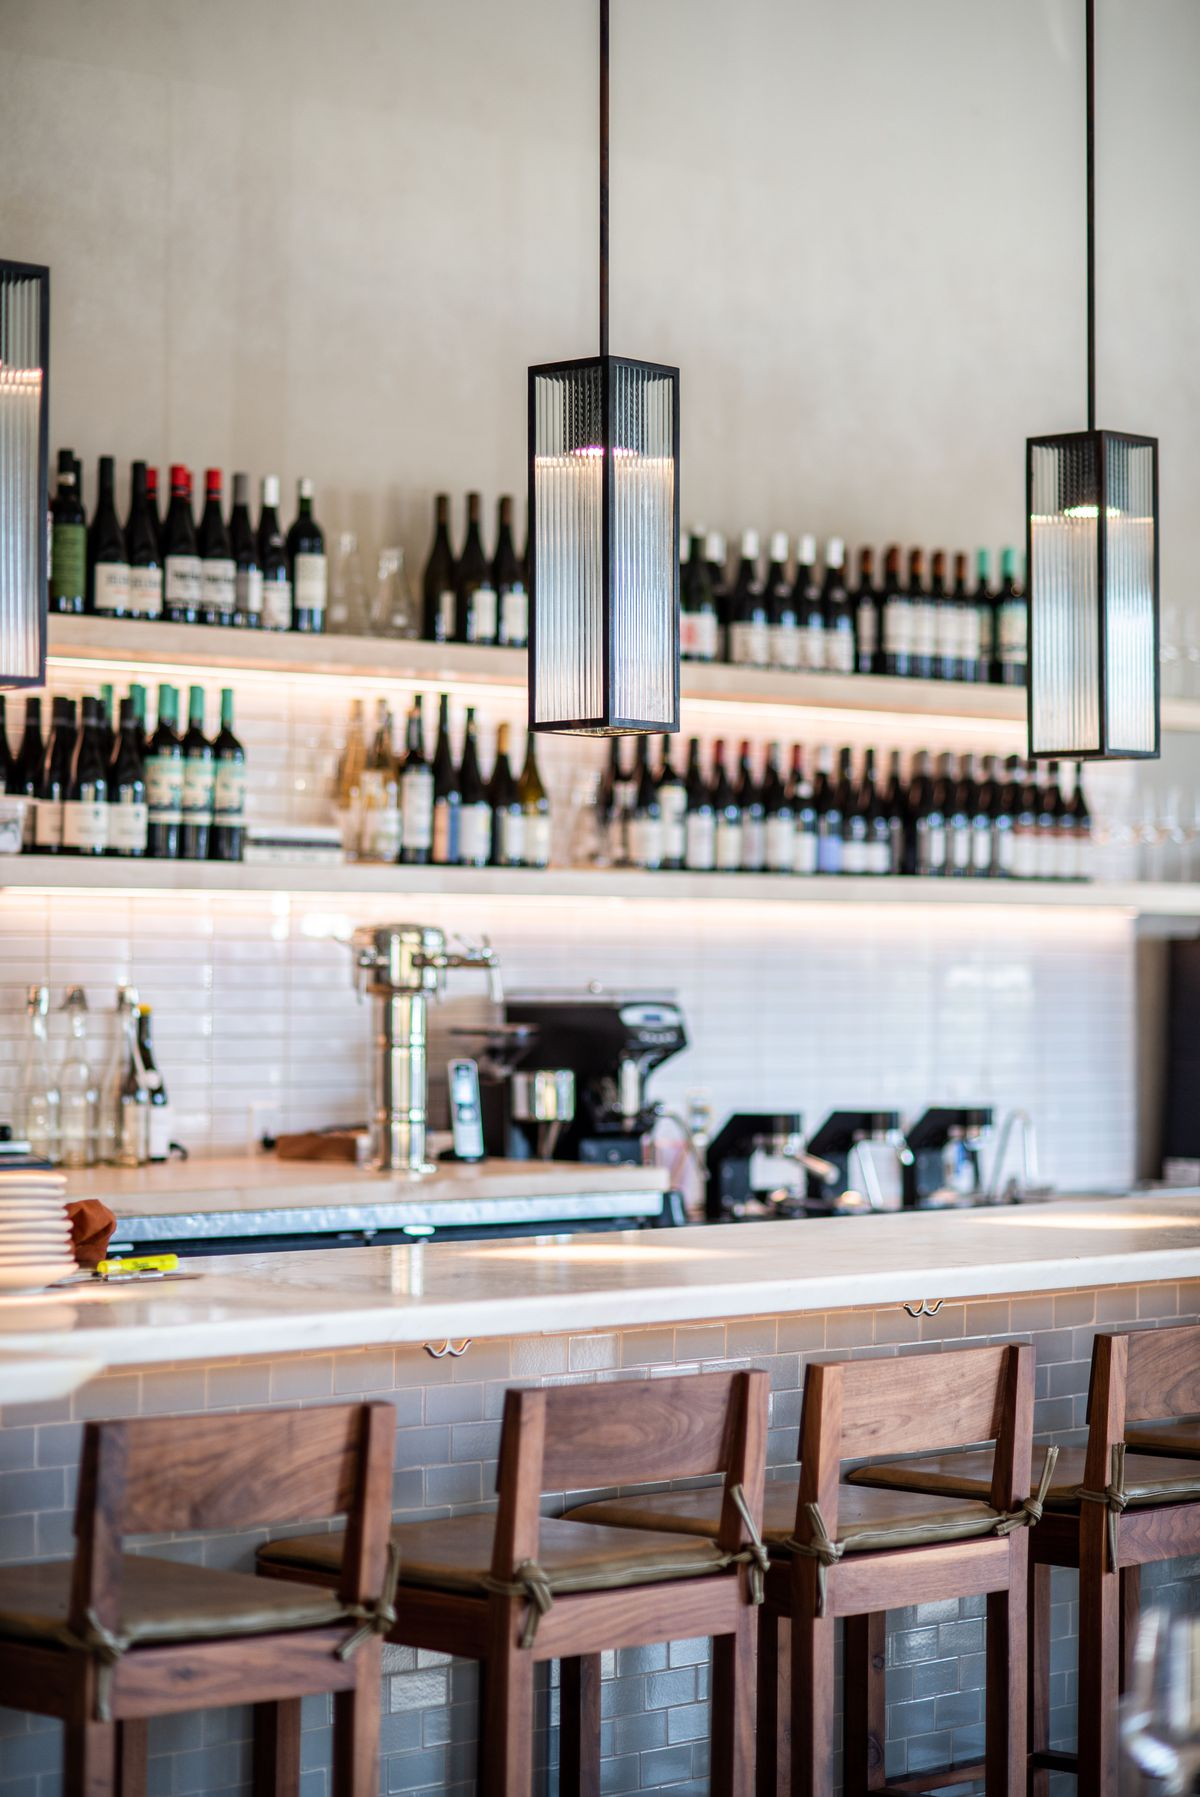 Bar with walnut stools and wine bottles at Varro.